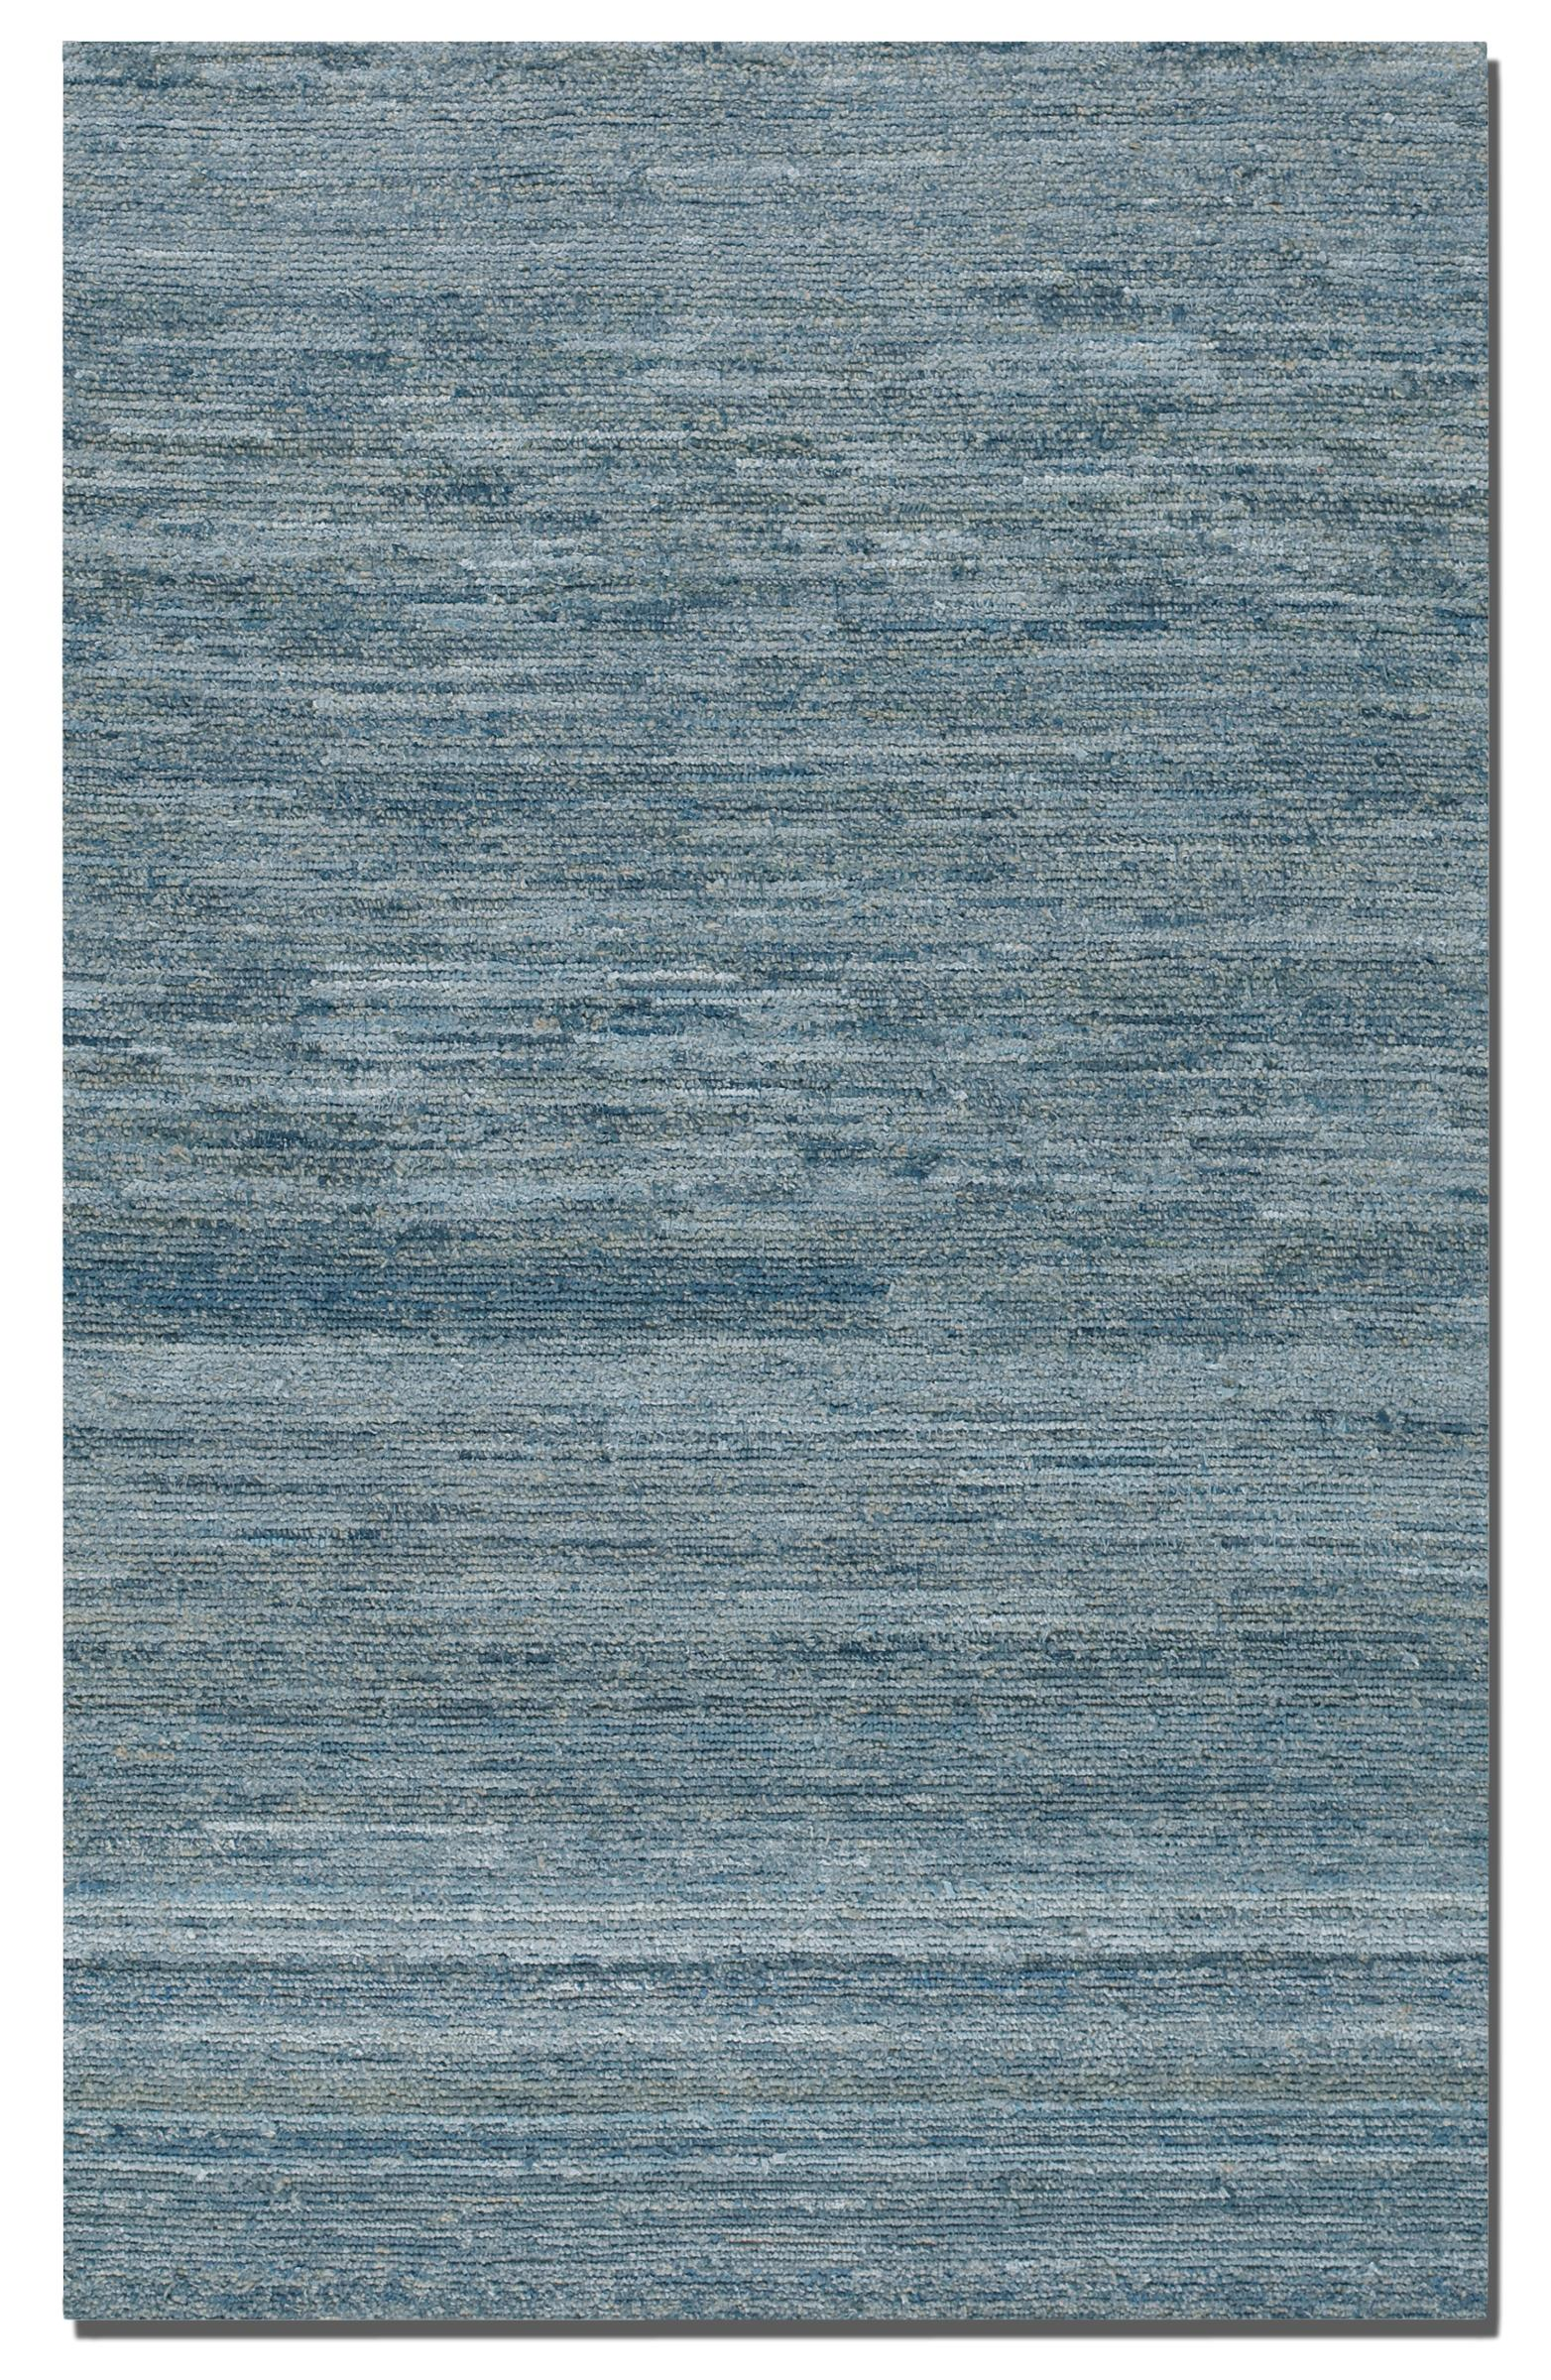 Uttermost Rugs Genoa 9 X 12 - Item Number: 73013-9